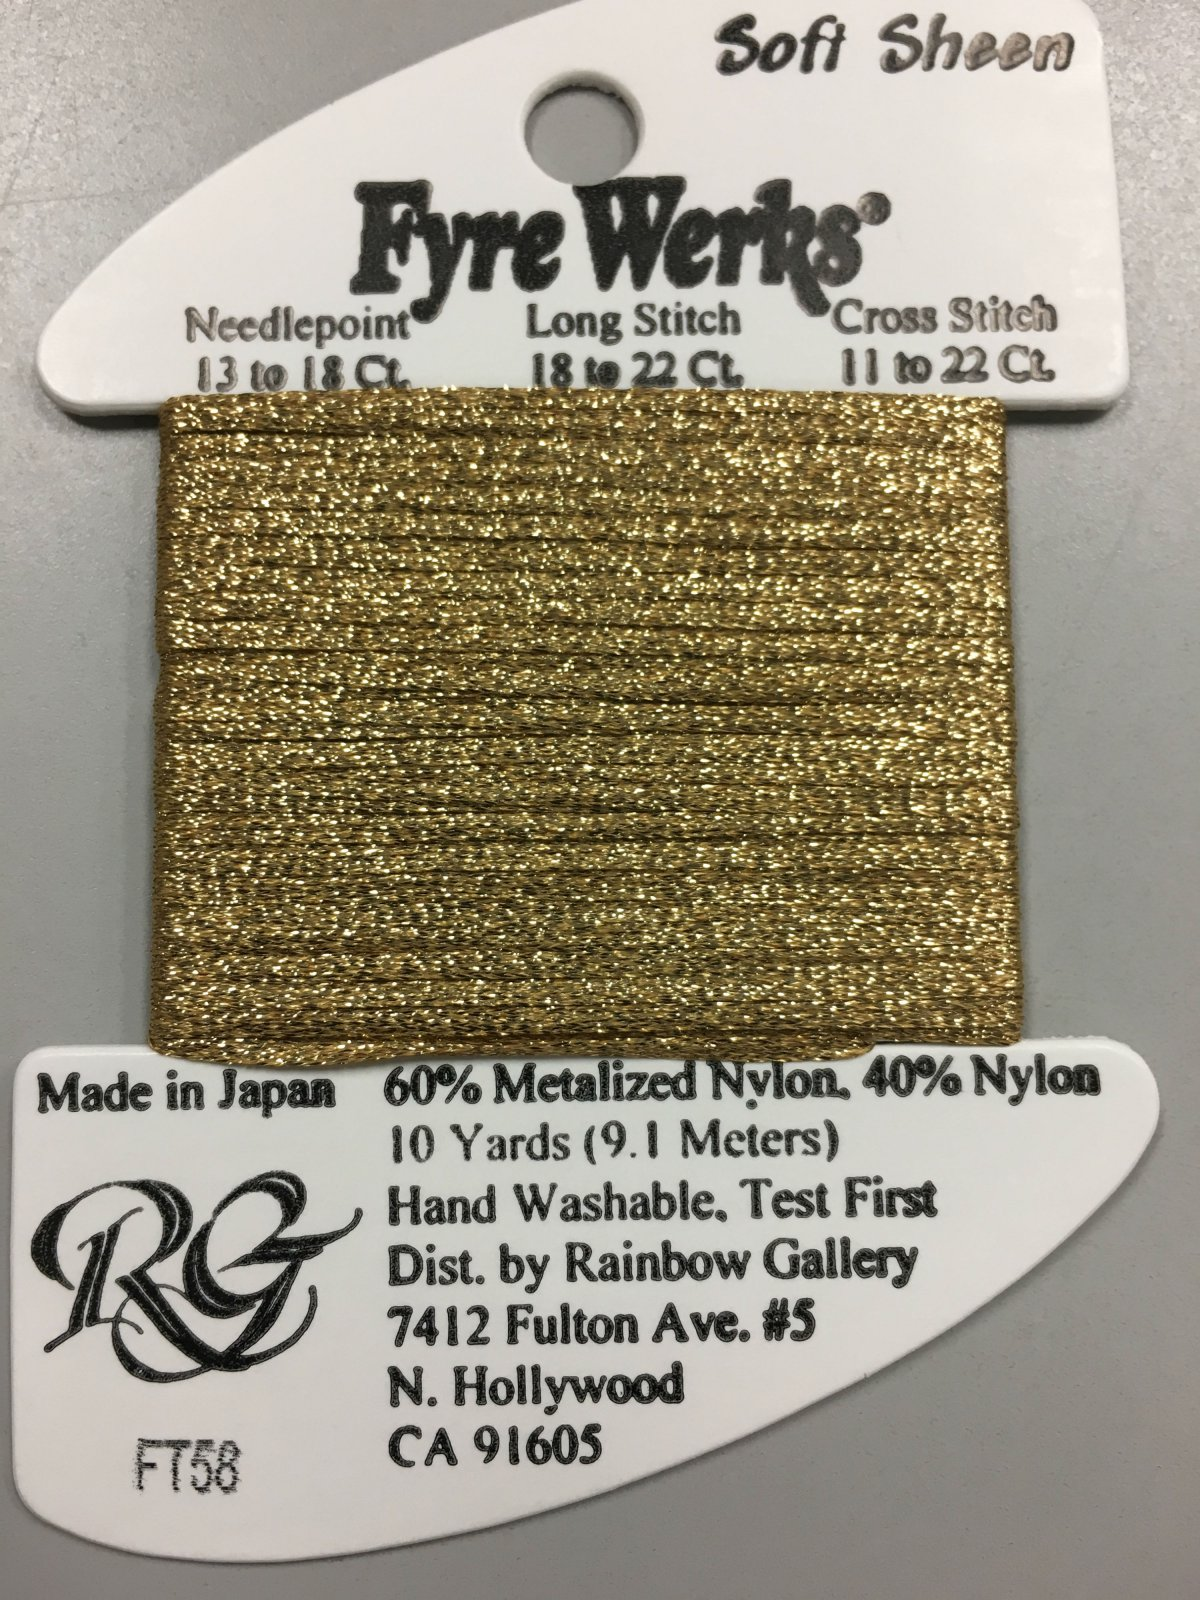 Fyre Werks Soft Sheen FT58